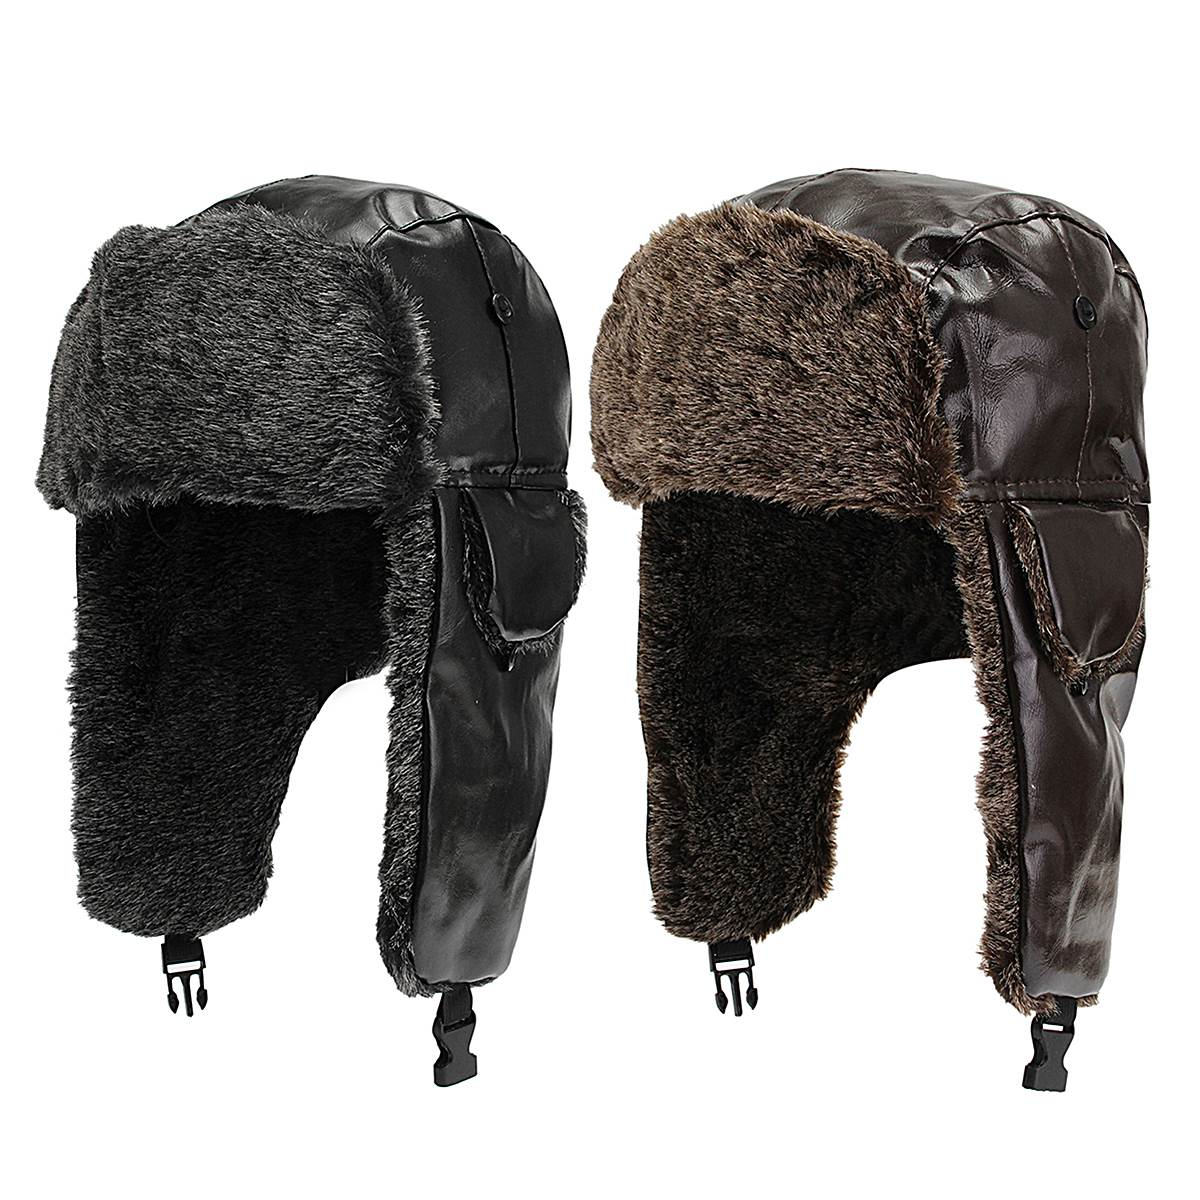 Men Warm Winter Earmuffs Leather Cap Lei Feng Cap Ear Protection Pilot Bomber Hats Proof Trapper Russian Hat with Ear Flap(China (Mainland))